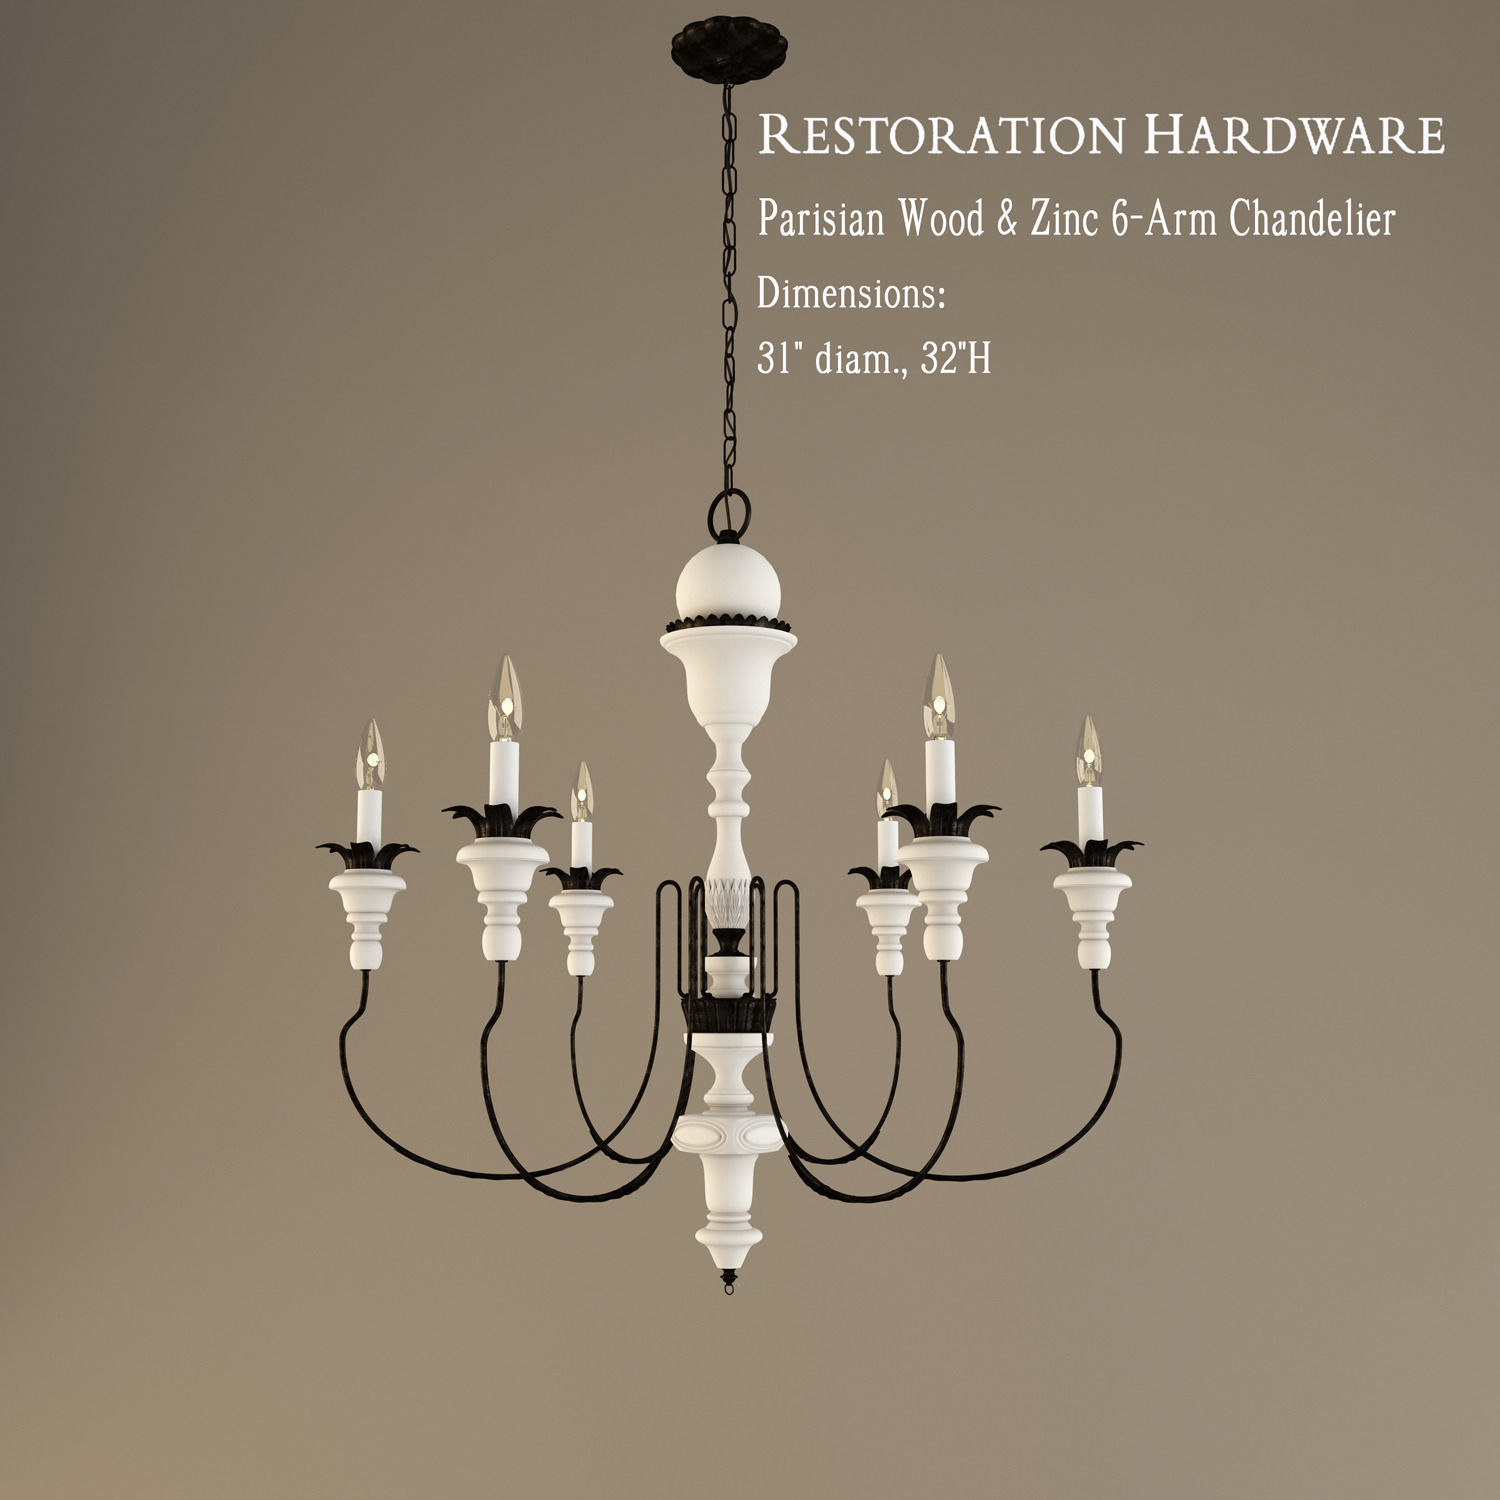 Restoration hardware parisian wood and zinc 6 arm chandelier 3d restoration hardware parisian wood and zinc 6 arm chandelier 3d model 3ds 1 aloadofball Gallery